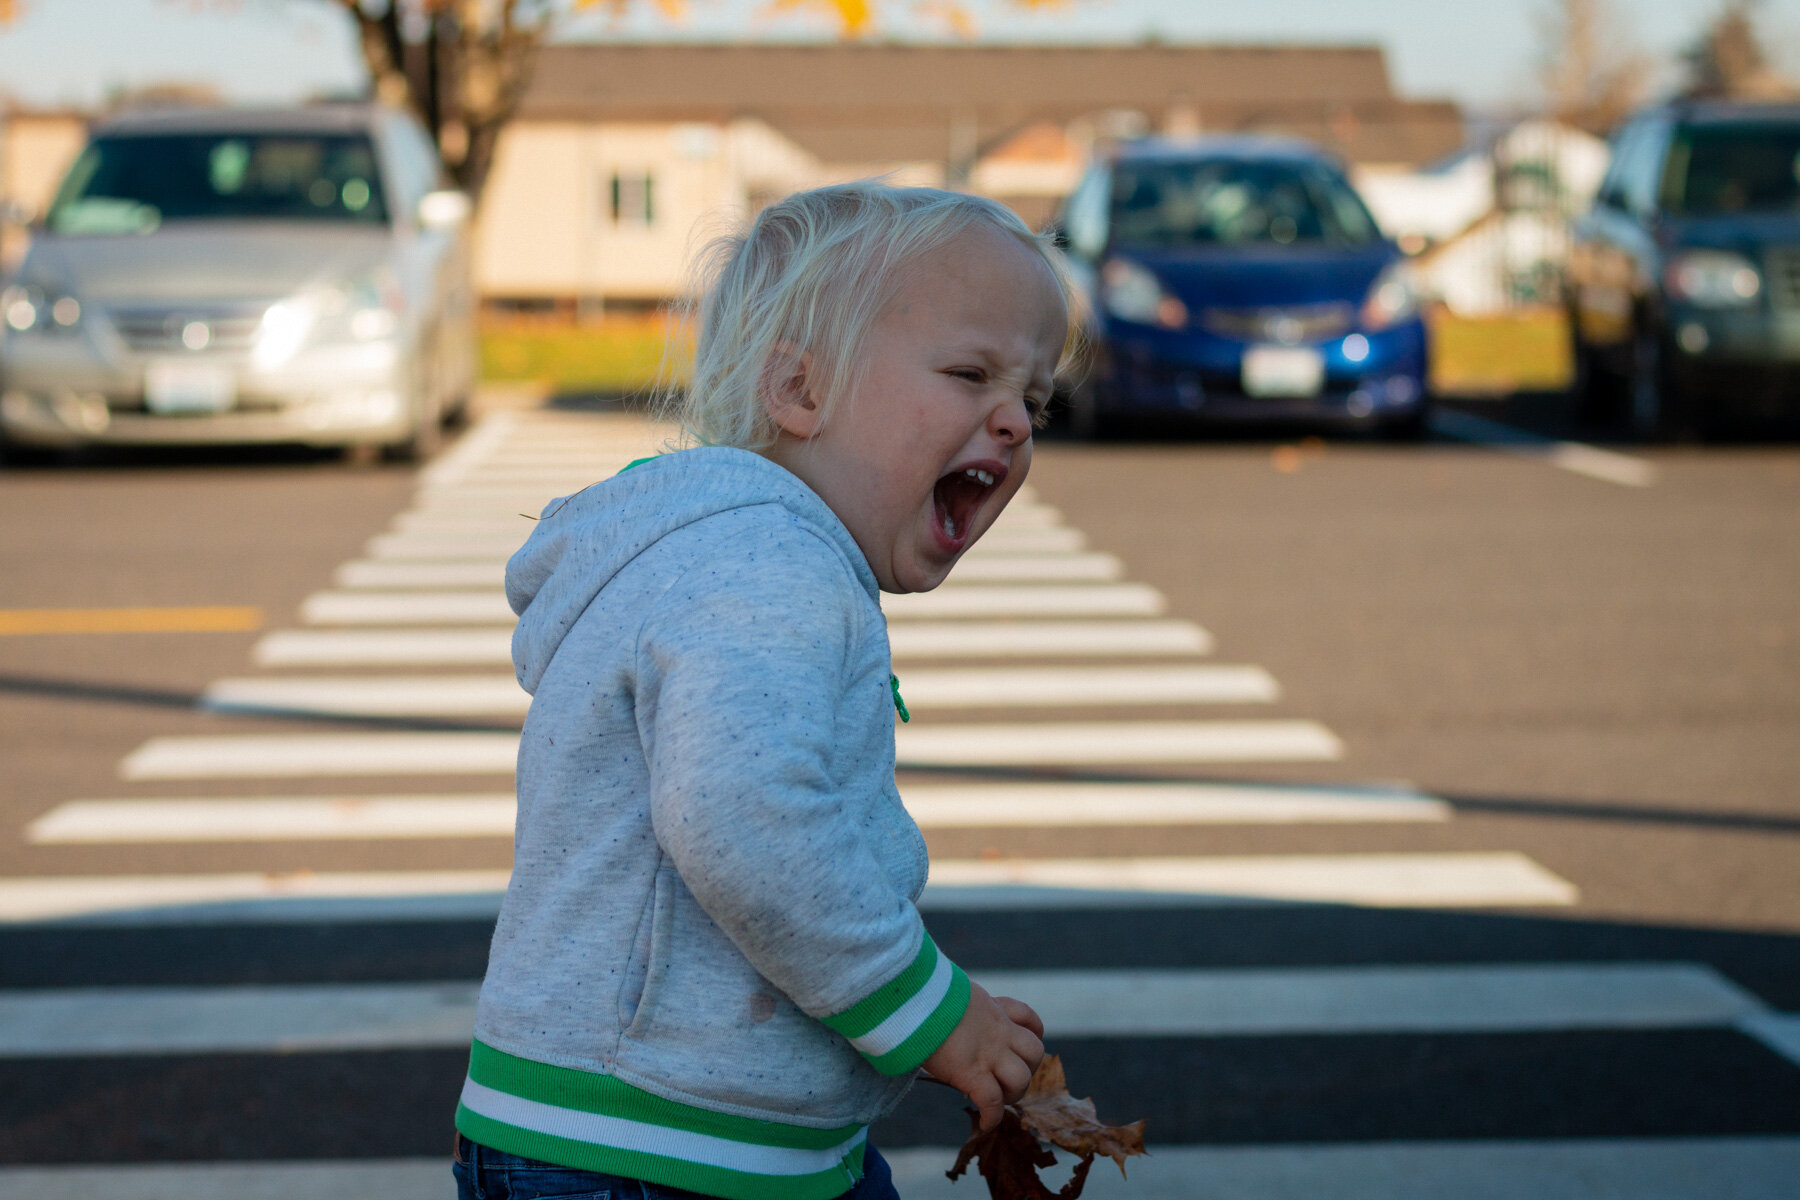 Two-year old blond boy collecting leaves in a school crosswalk.